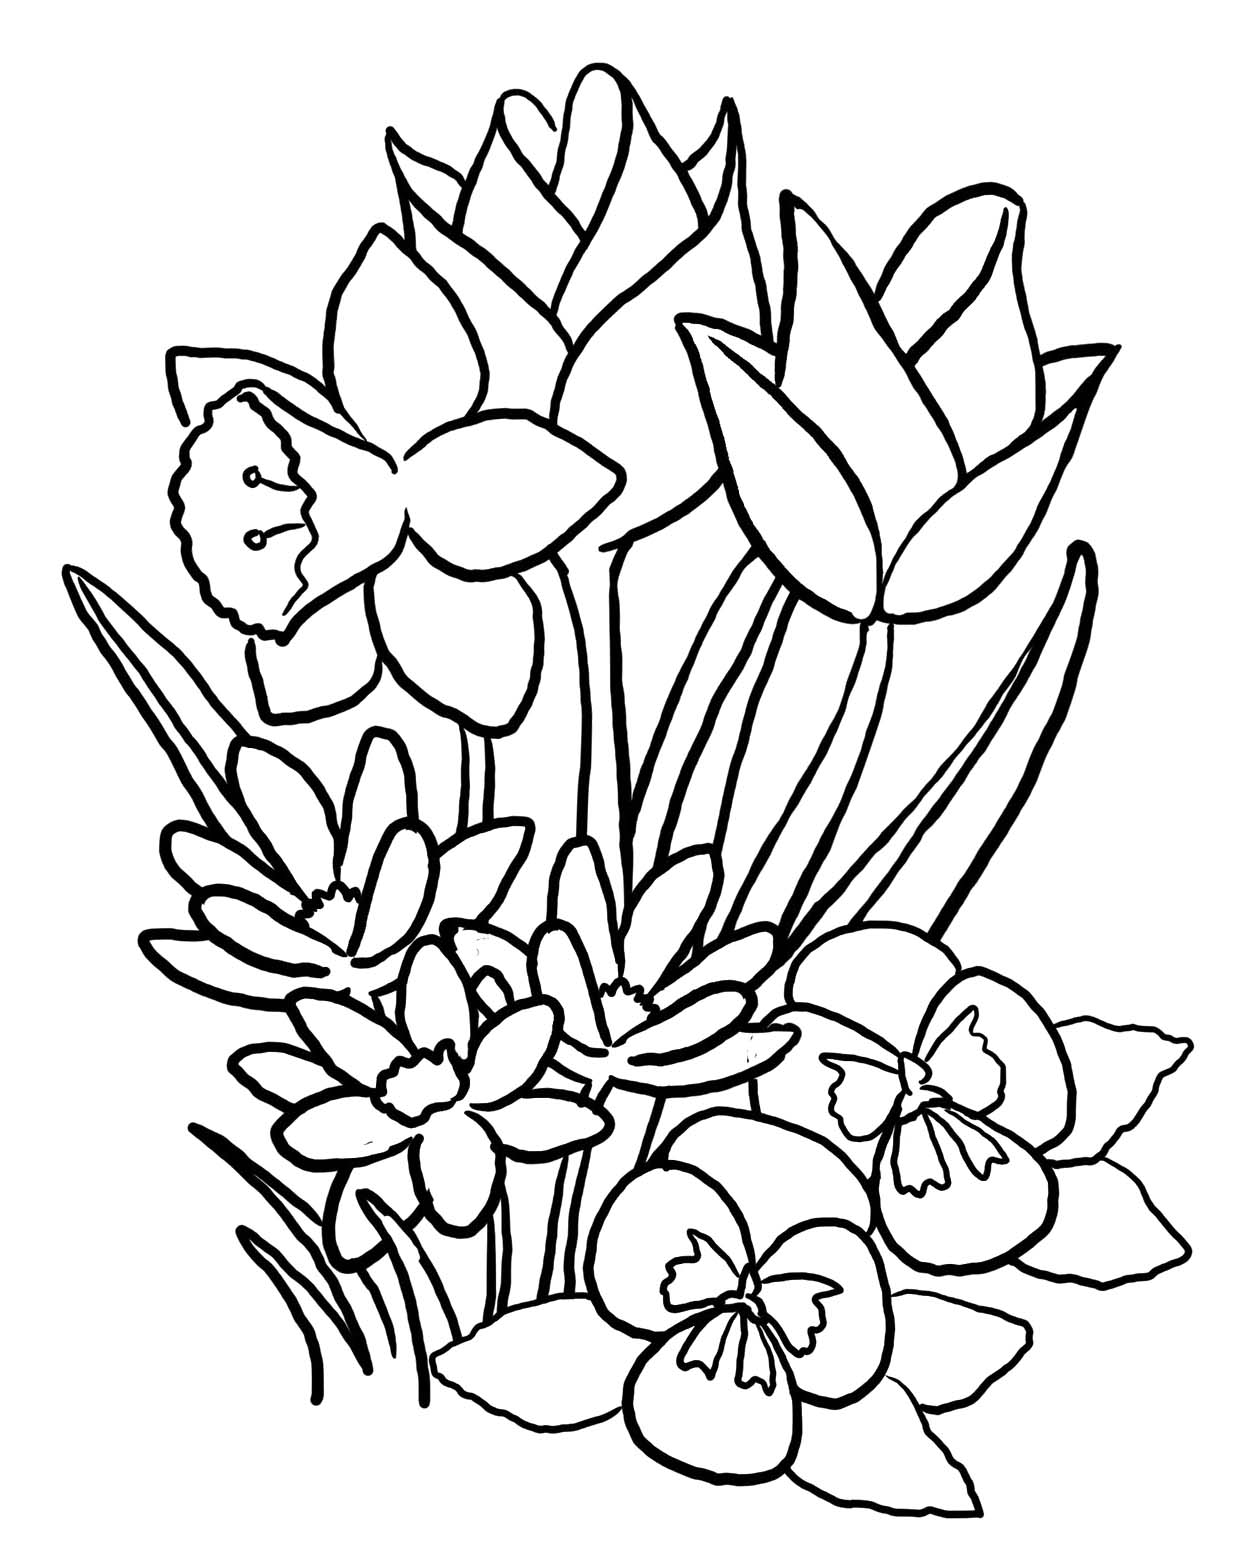 flower coloring pages for kids free printable flower coloring pages for kids best for flower pages kids coloring